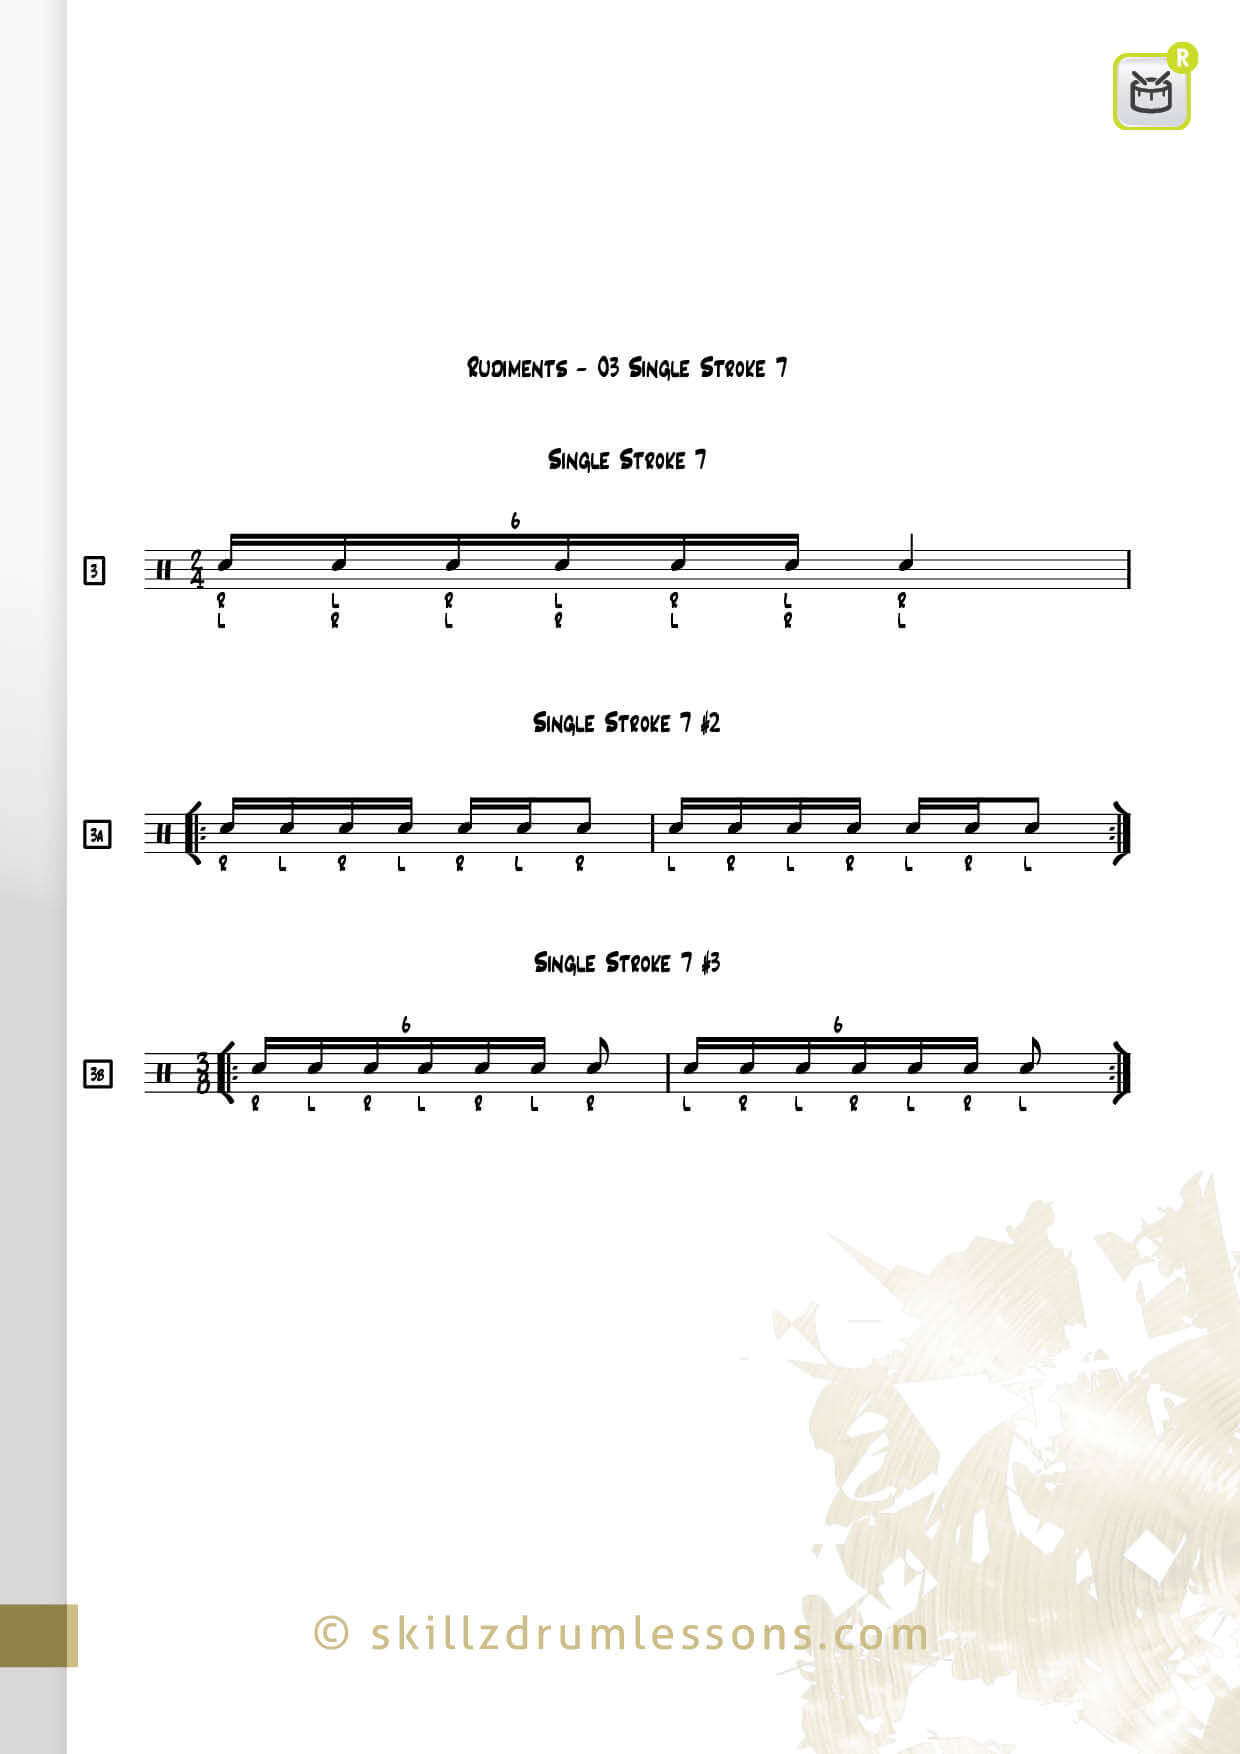 This is an image of the Official 40 Essential P.A.S. Rudiments #3 The Single Stroke Seven by Skillz Drum Lessons